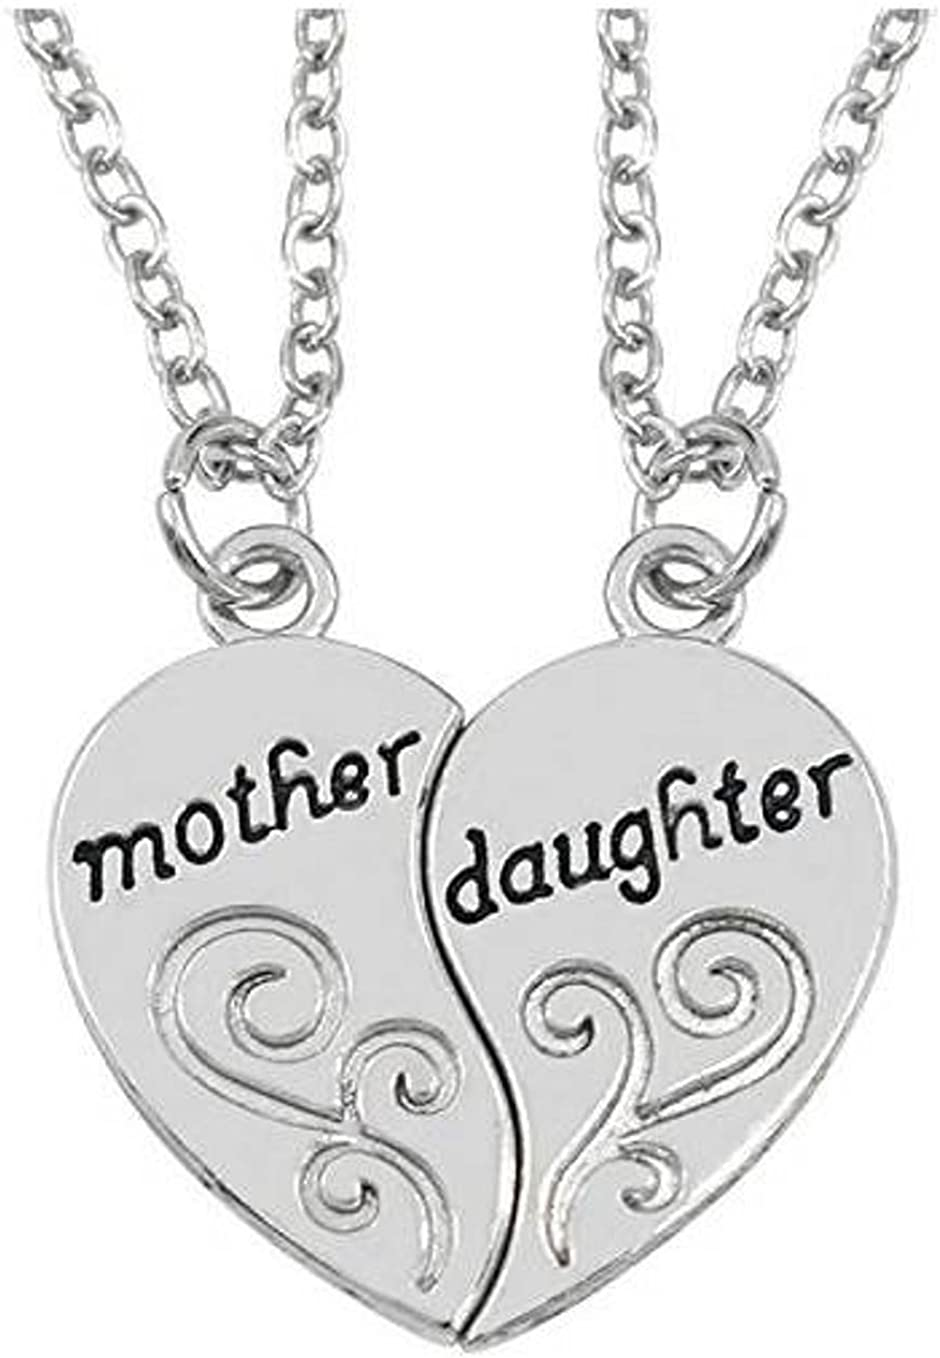 Mother Daughter Inspirational 2-piece Heart Pendant Necklace Set - Best Family Gift from Adorit Brand